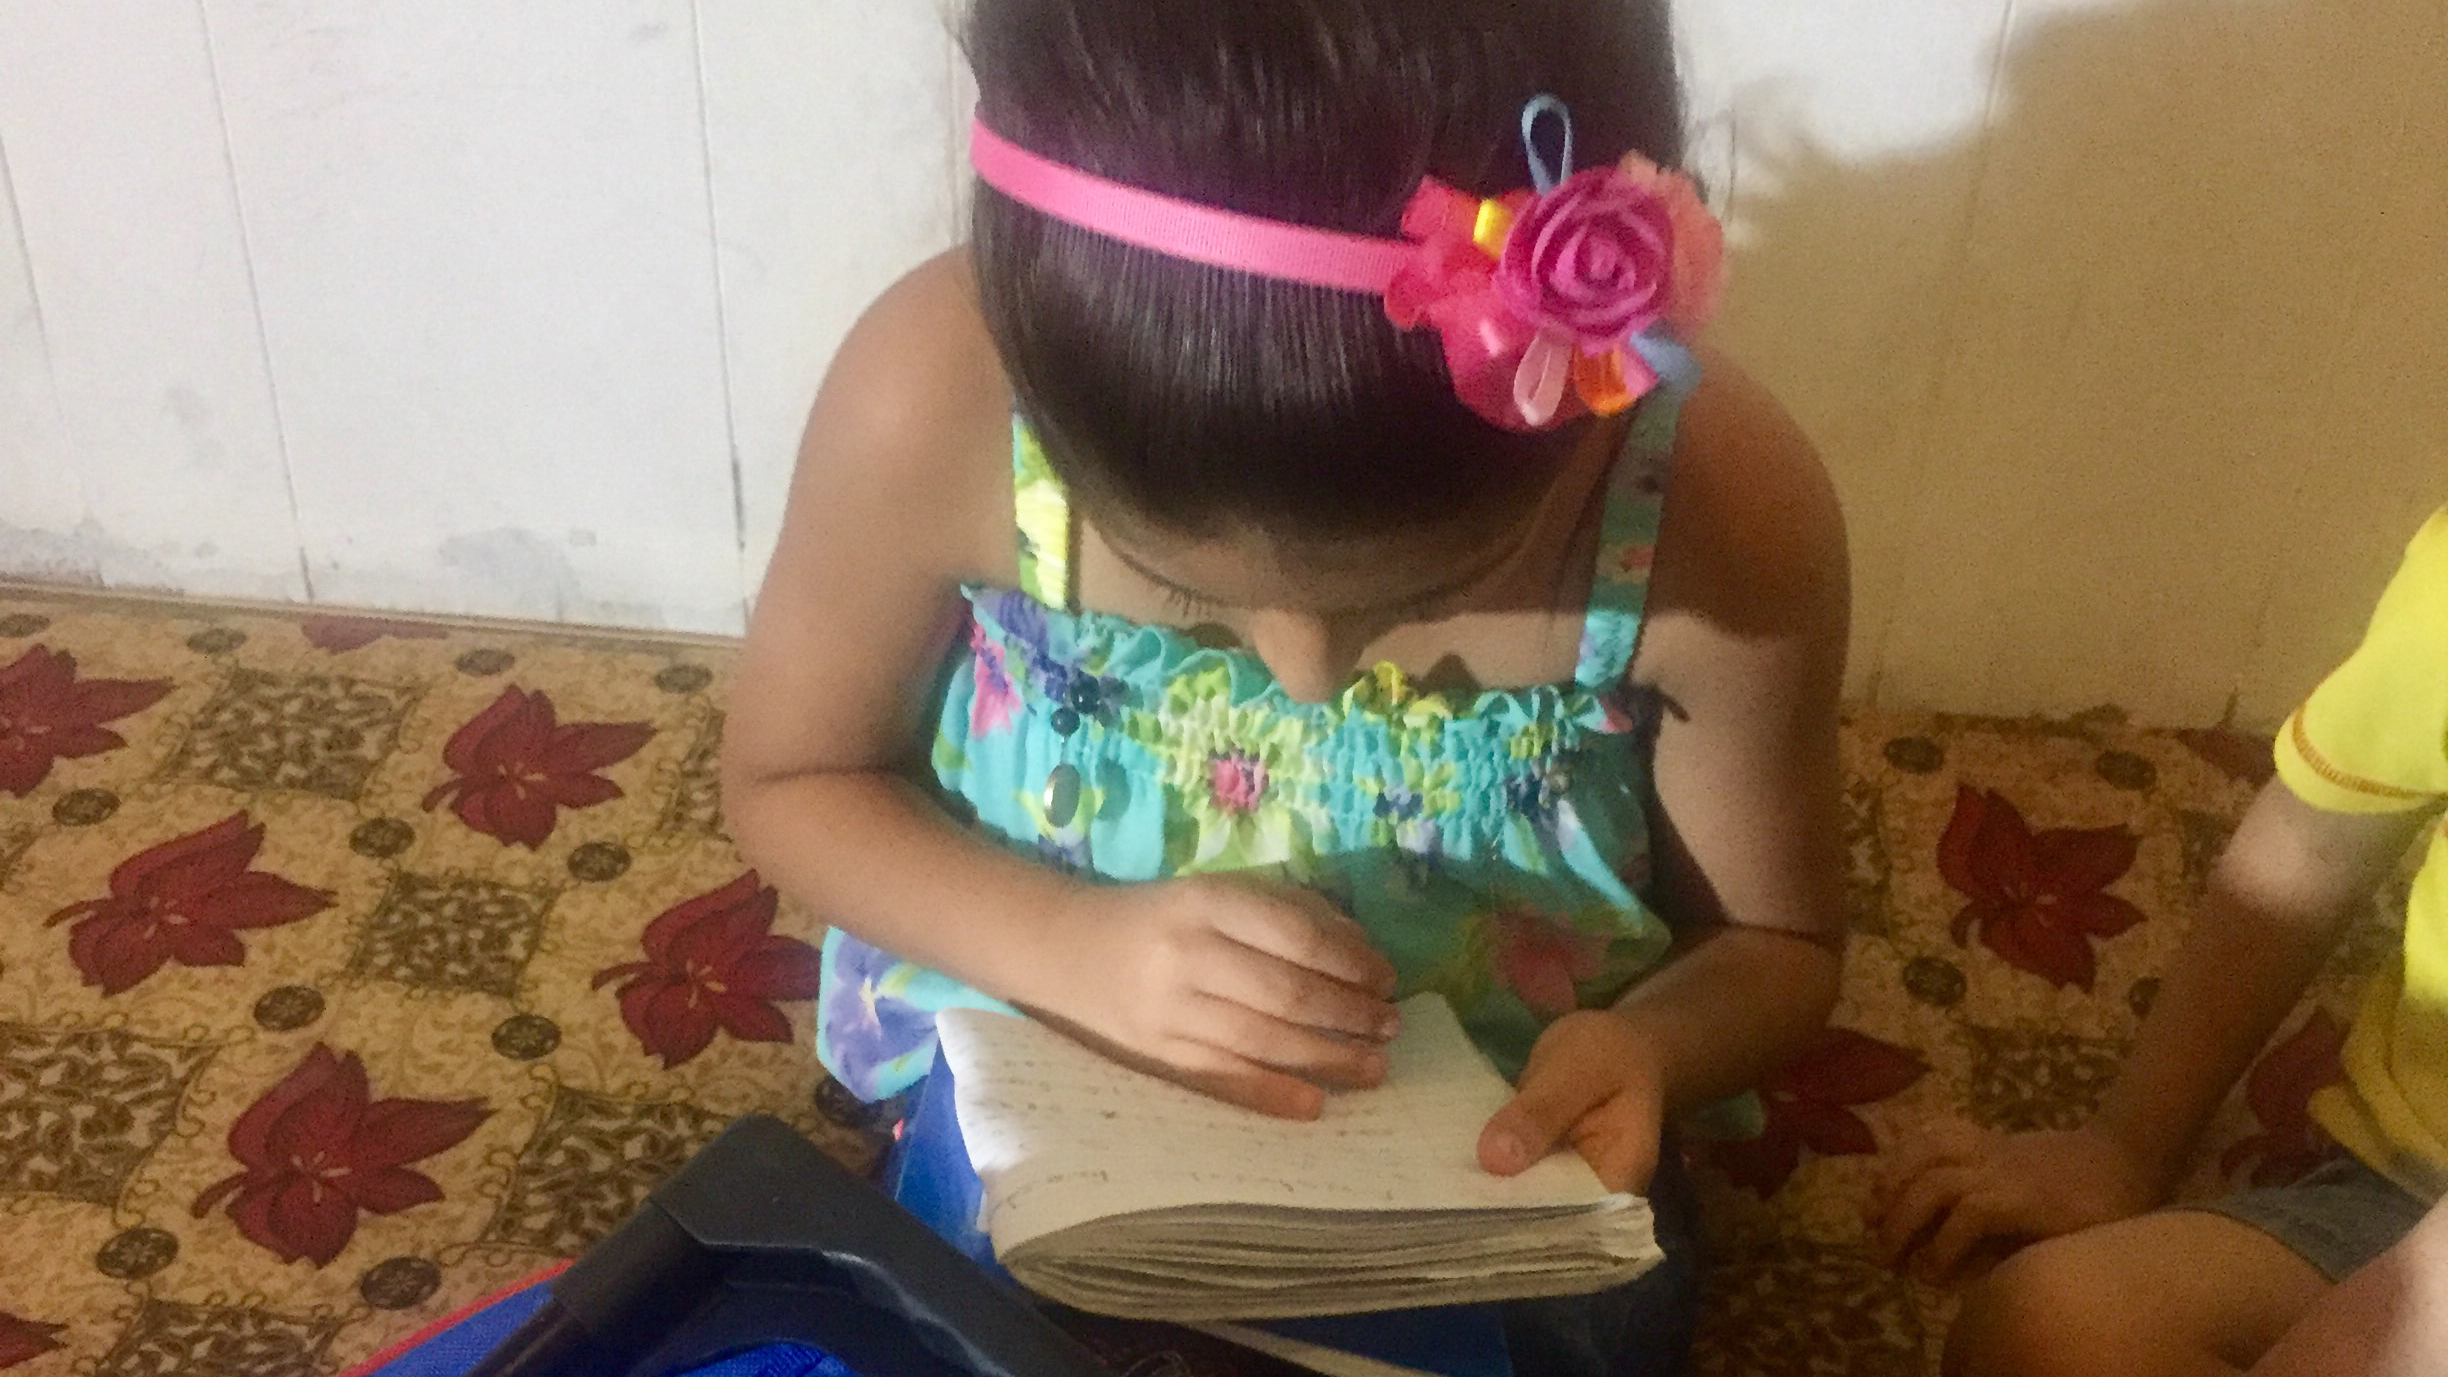 With large and flexible contributions from donor countries like Norway, 7 year-old Zeina will be able to achieve her dreams of going to school and one day becoming a doctor.